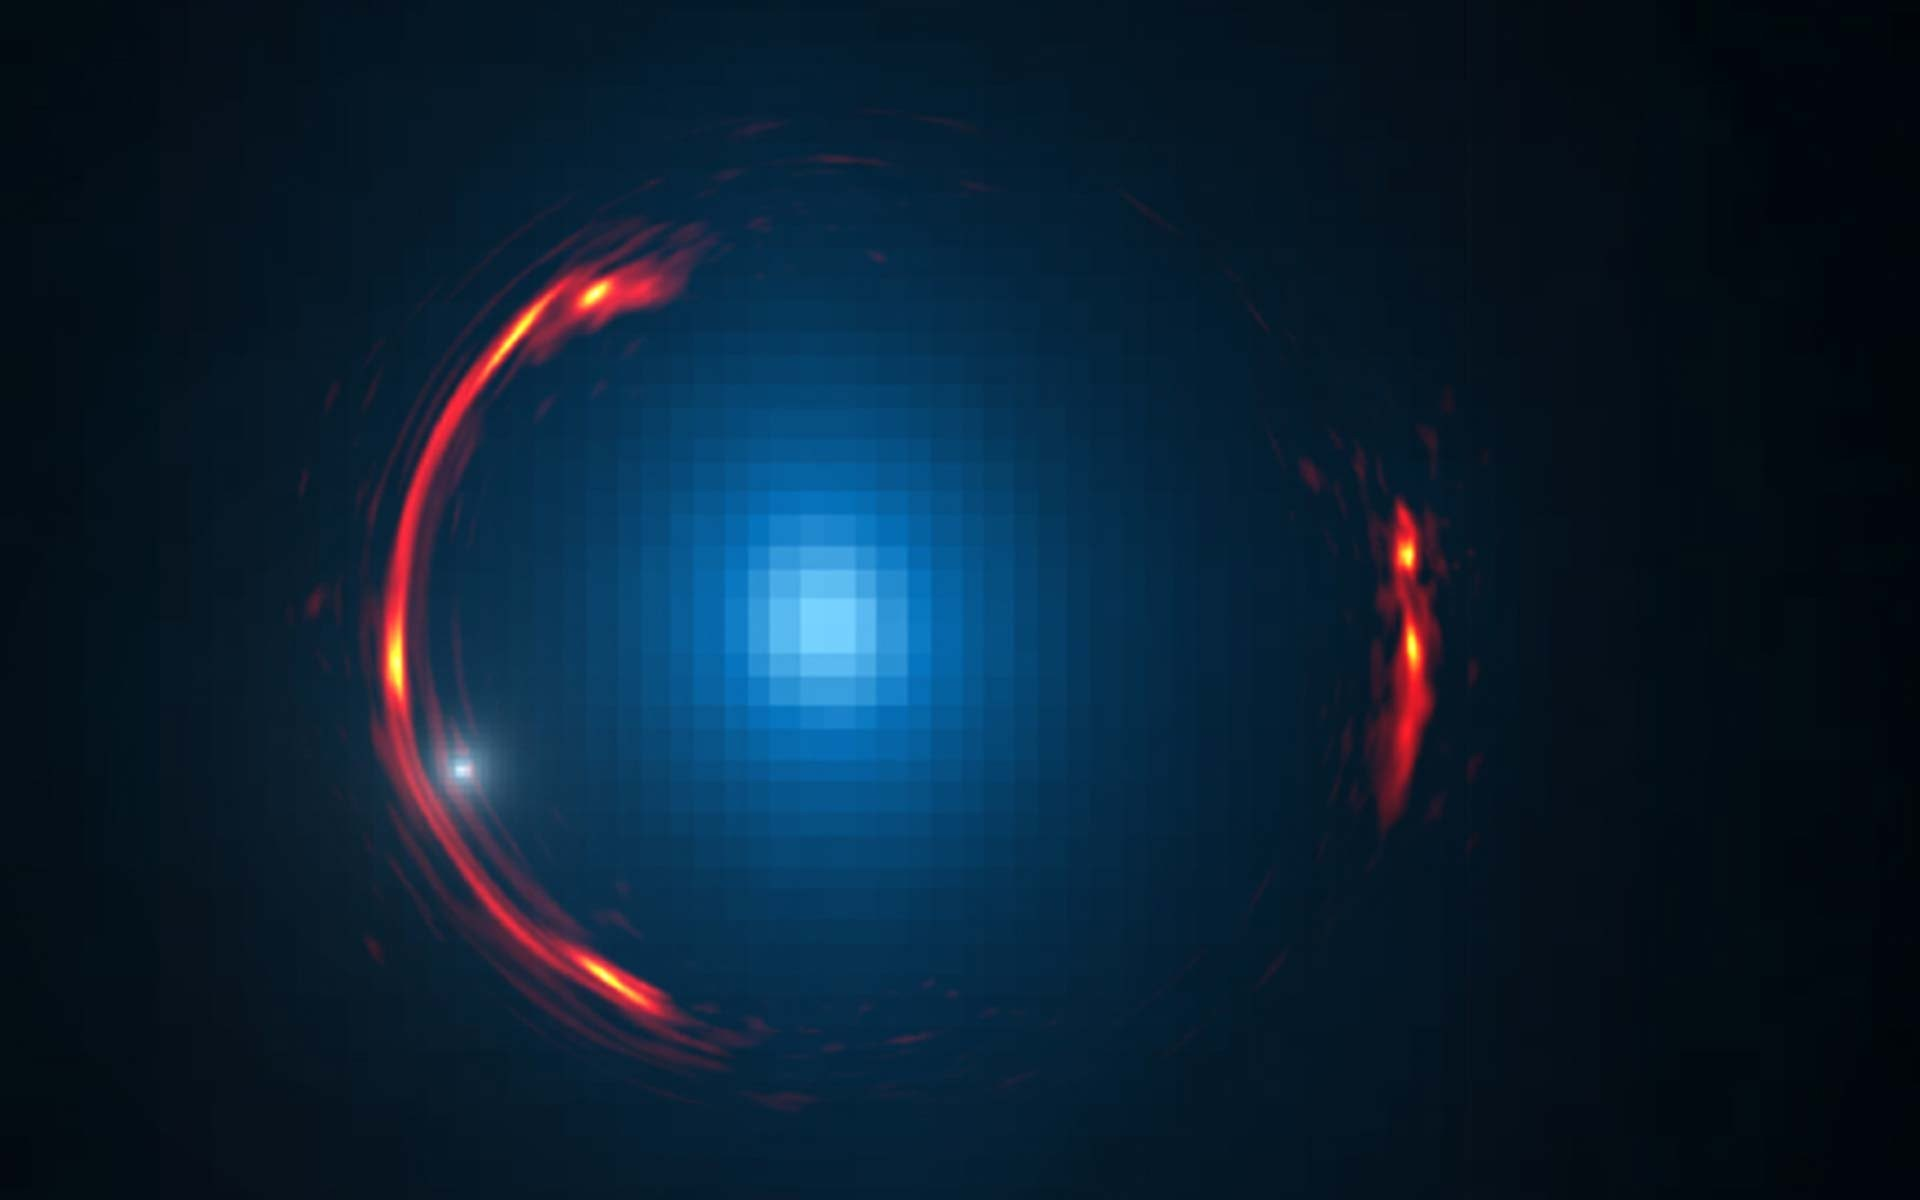 An Intriguing Cosmic Distortion | Space Wallpaper